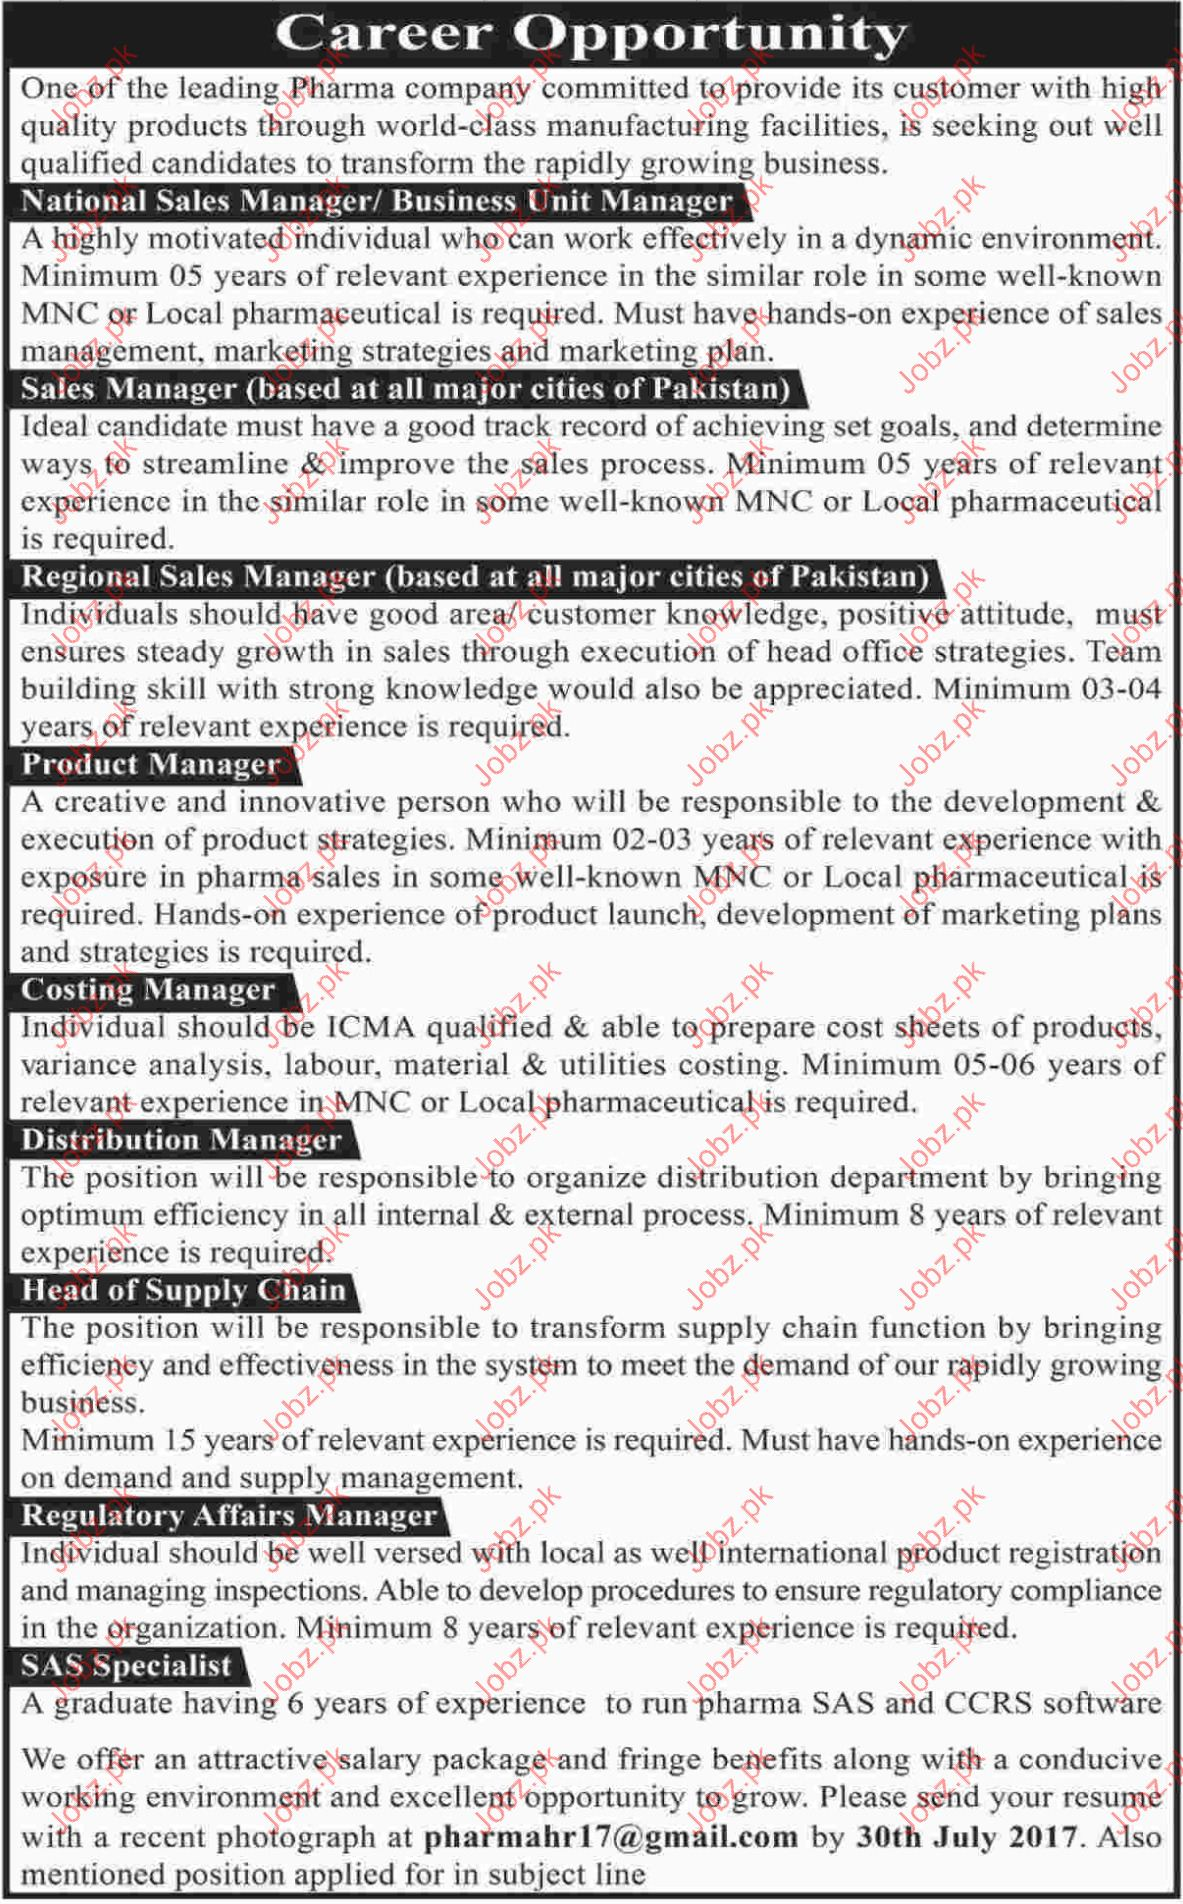 National Sales Manager Jobs In Pharma Company